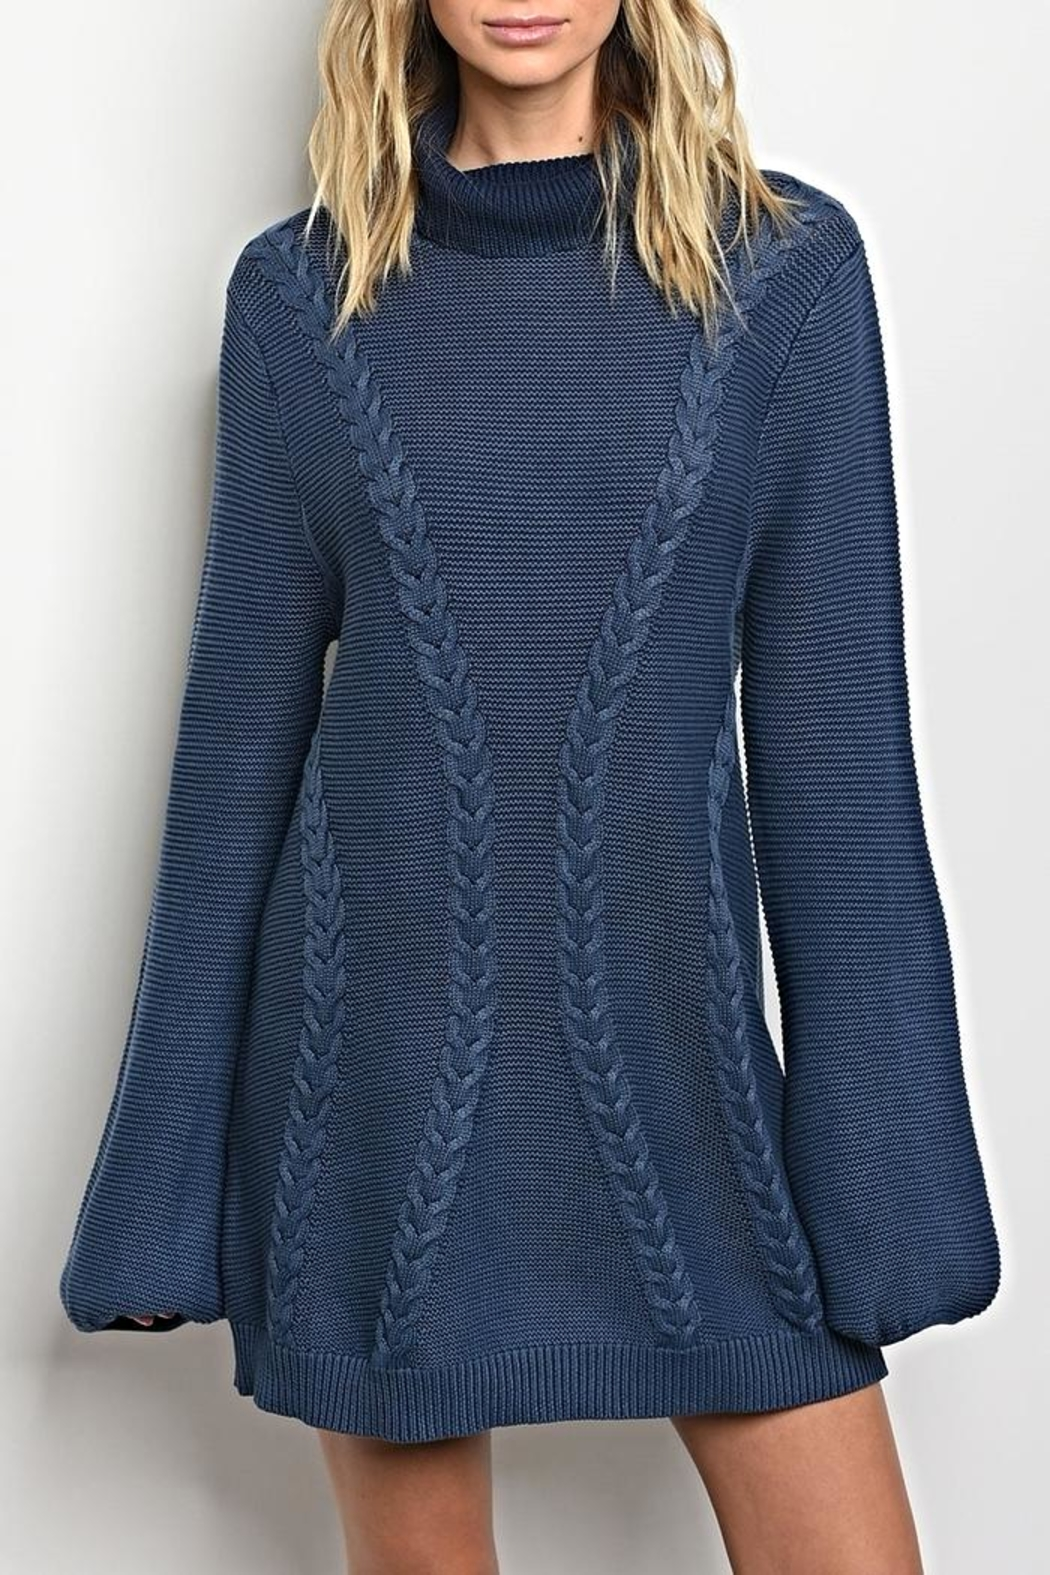 LoveRiche Turtleneck Indigo Sweater - Main Image